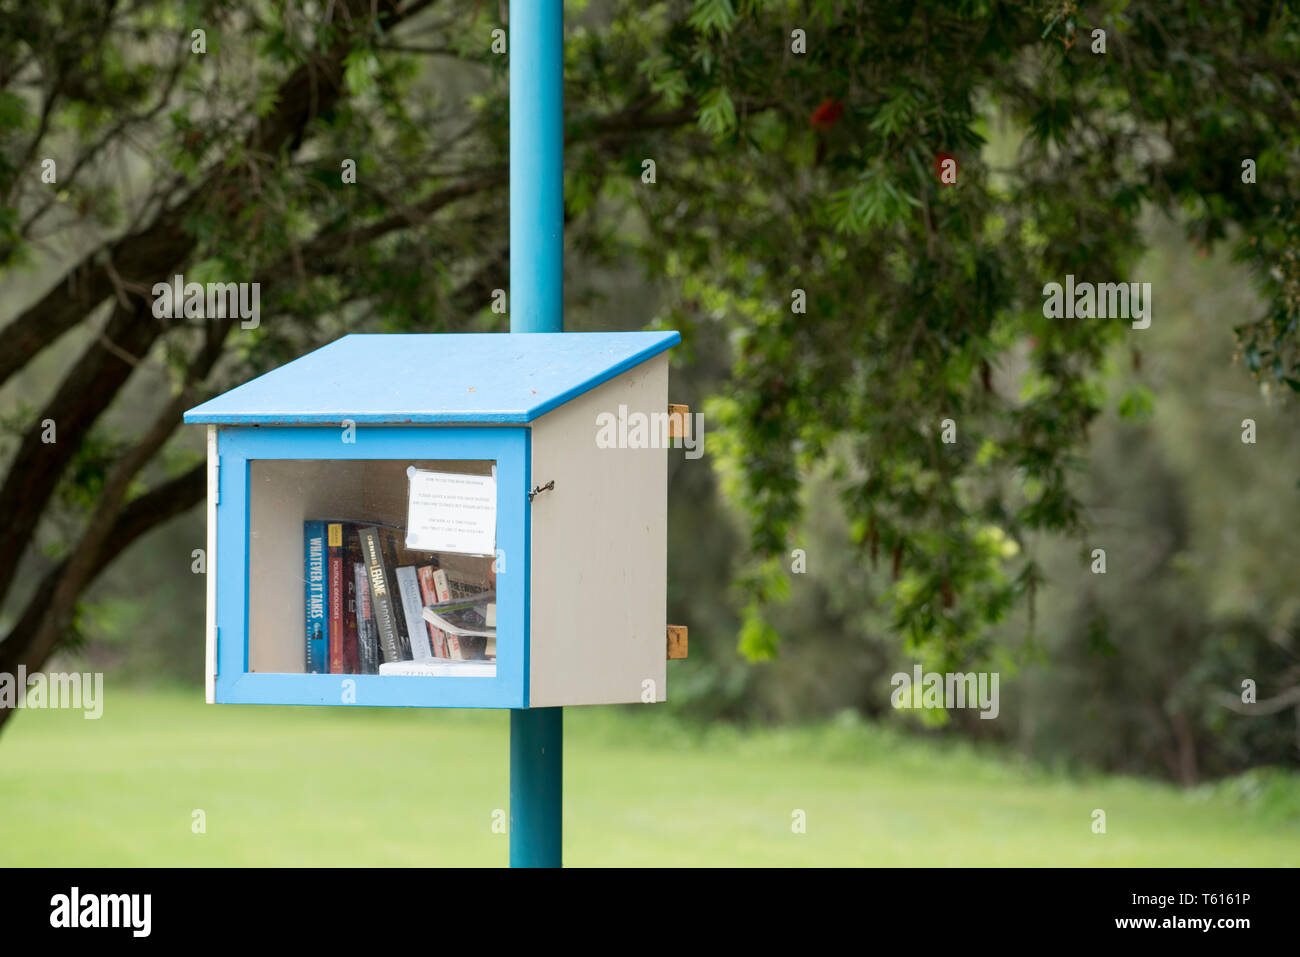 A street library or free book exchange near the local shops at the rural town of Kioloa / Bawley Point on the New South Wales south coast in Australia - Stock Image